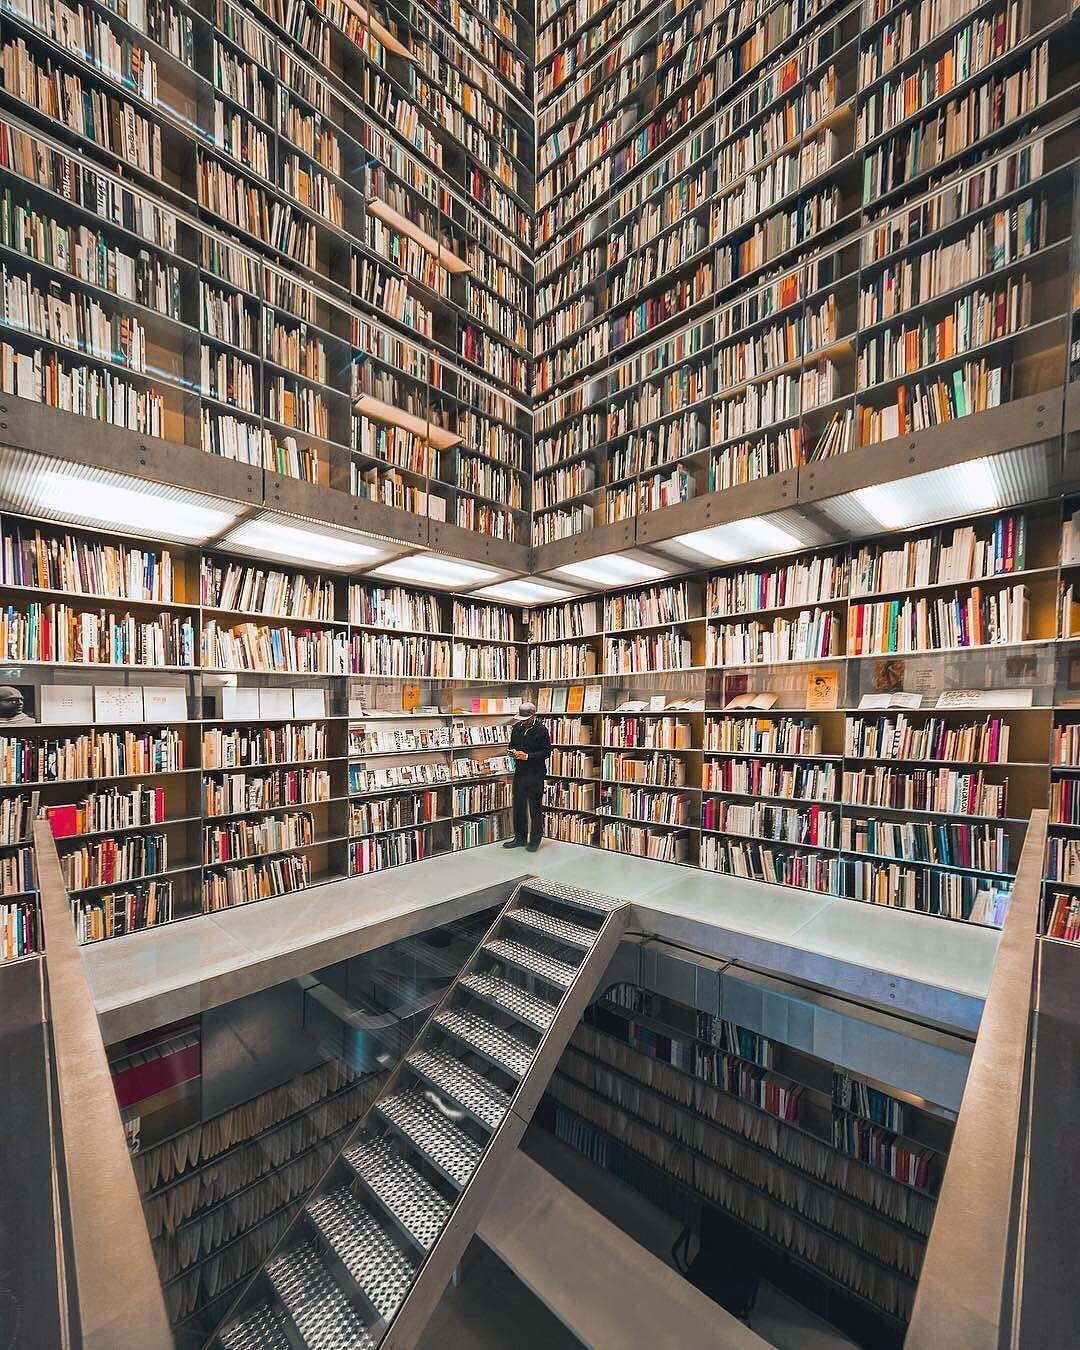 For Bibliophiles Bookshops And Libraries Can Transport People To Another Place Where You Re By Yourself But You Are Never Eindhoven Bookshop Modern Library